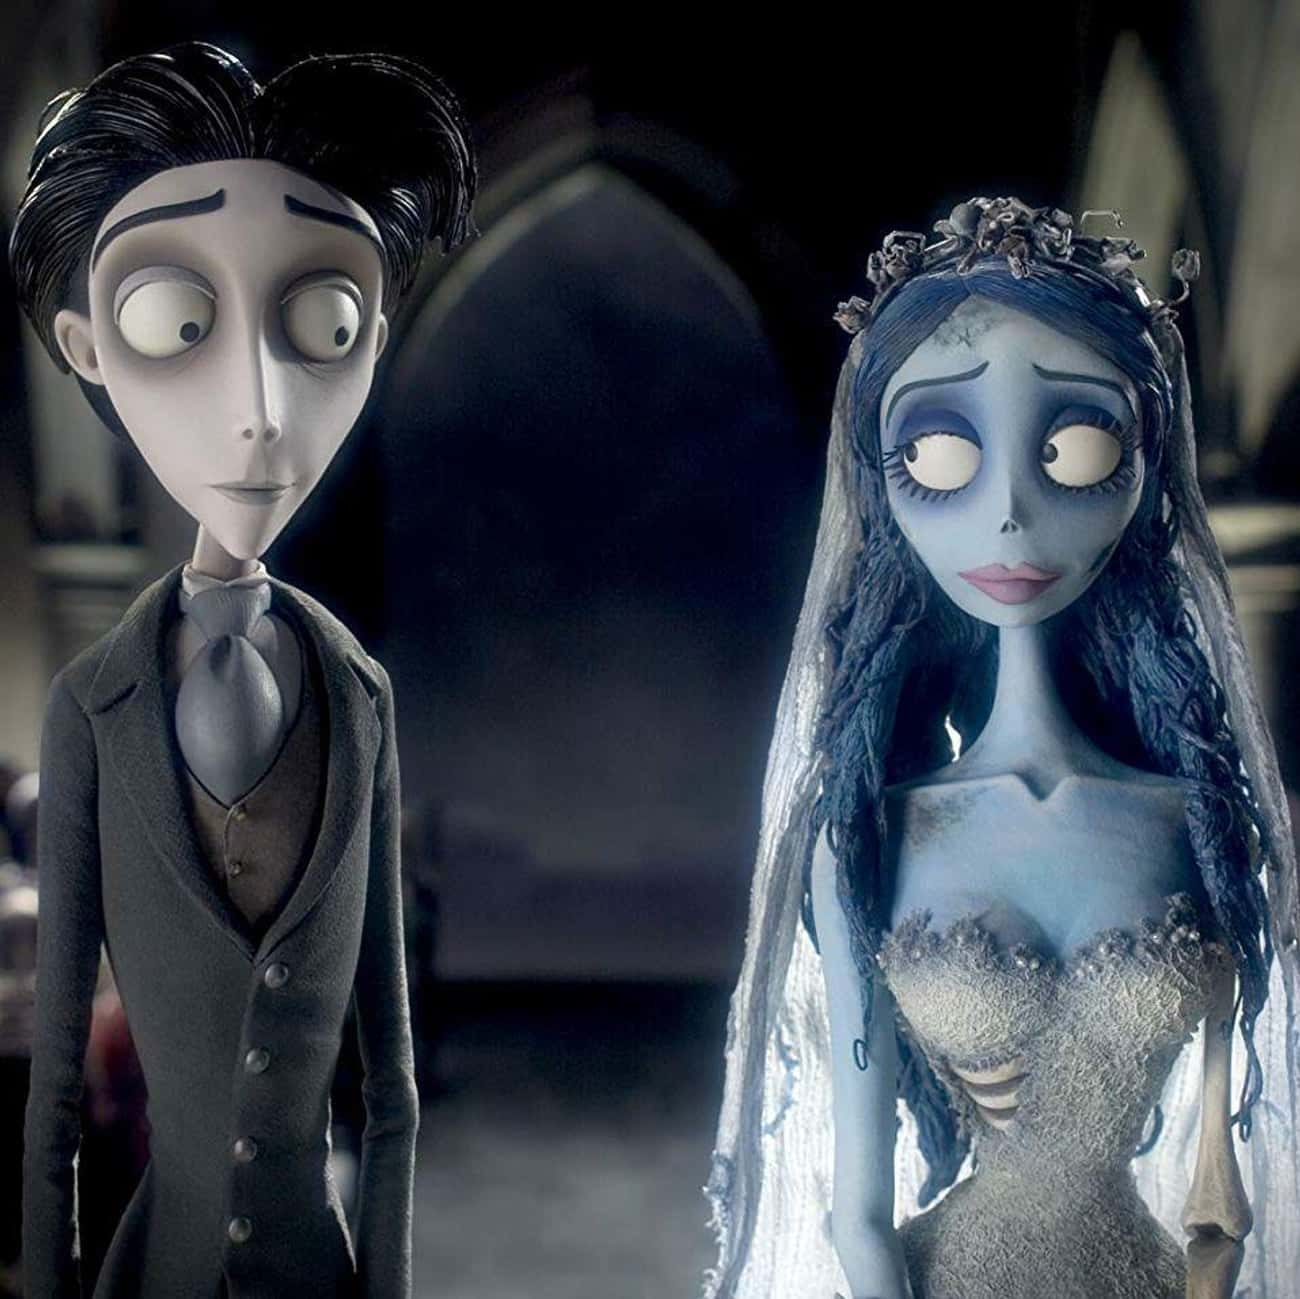 Corpse Bride is listed (or ranked) 2 on the list The Best Horror Movies With Weddings, Ranked